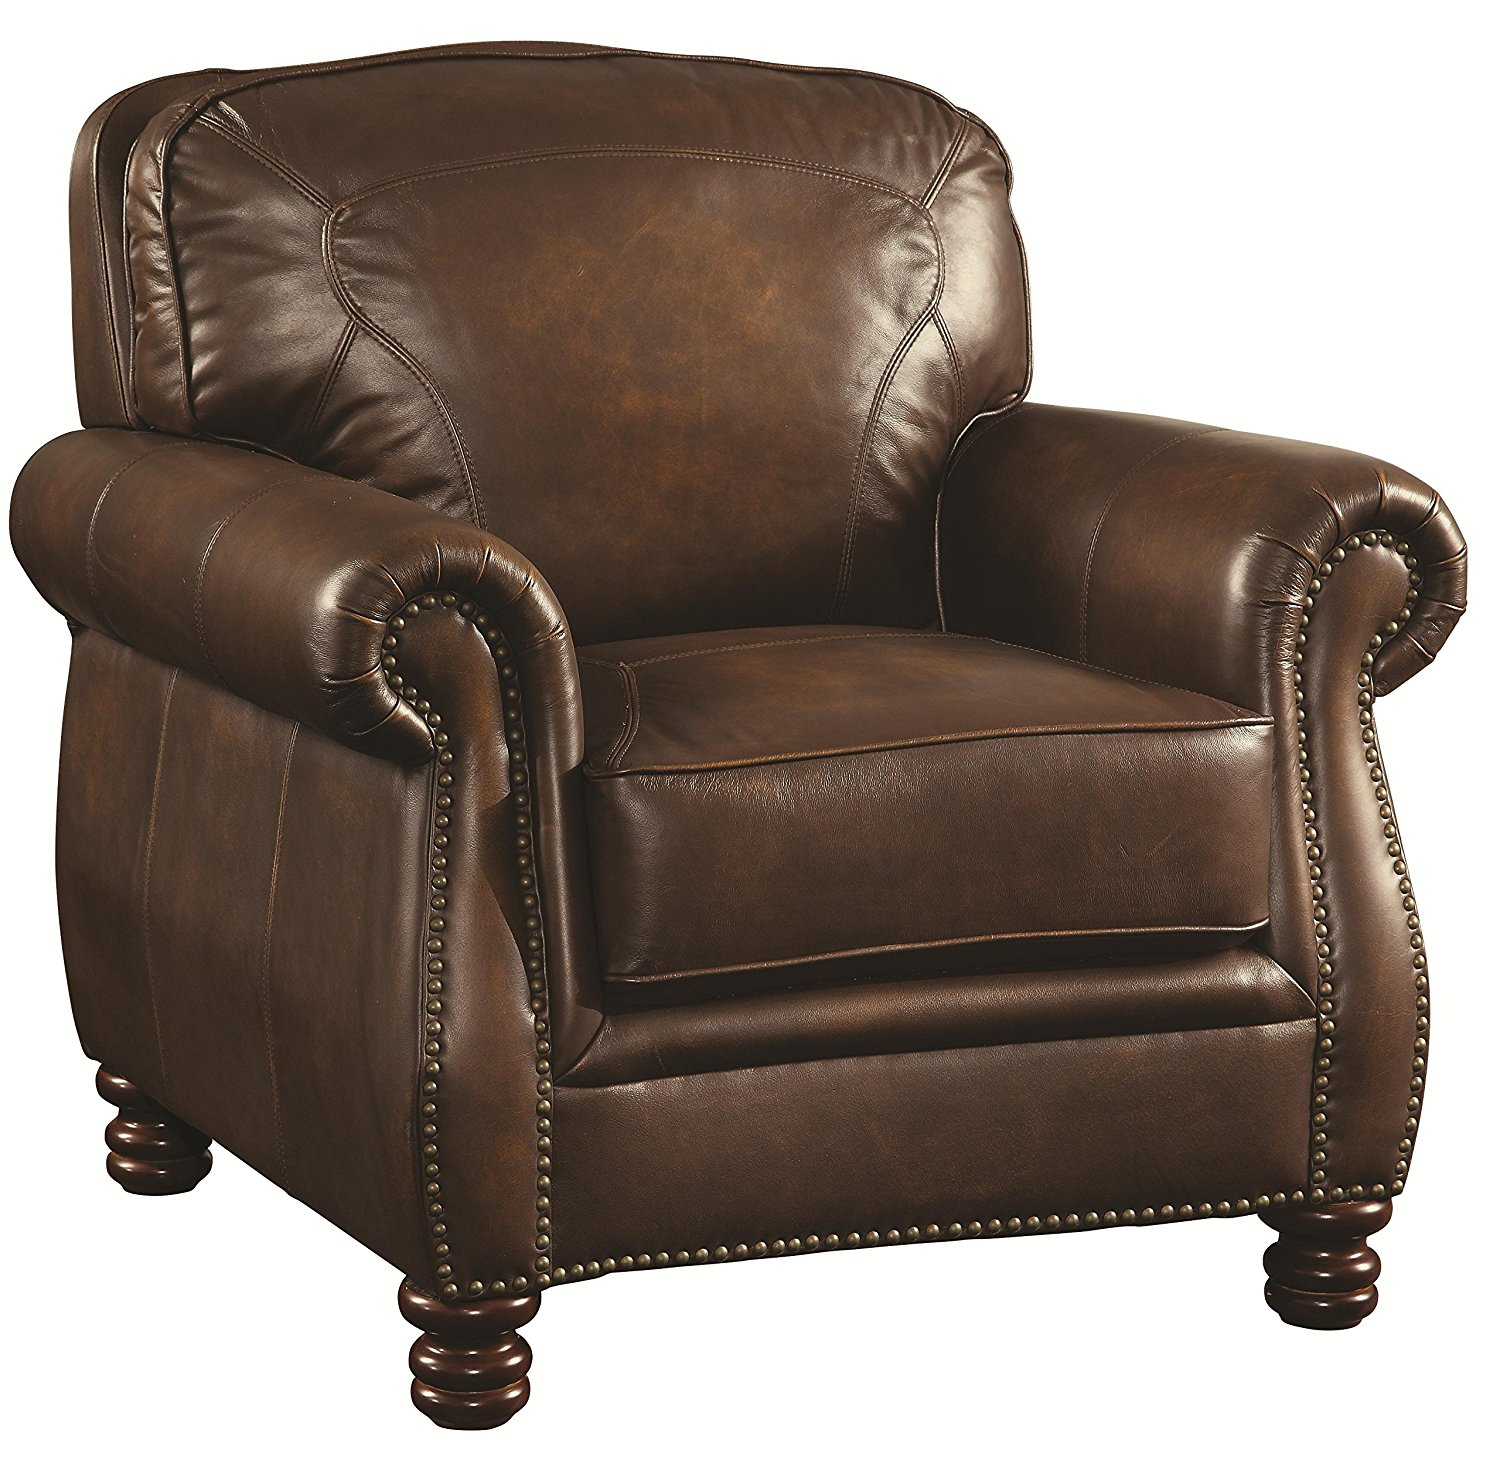 Coaster 503983 Montbrook Traditional Chair With Rolled